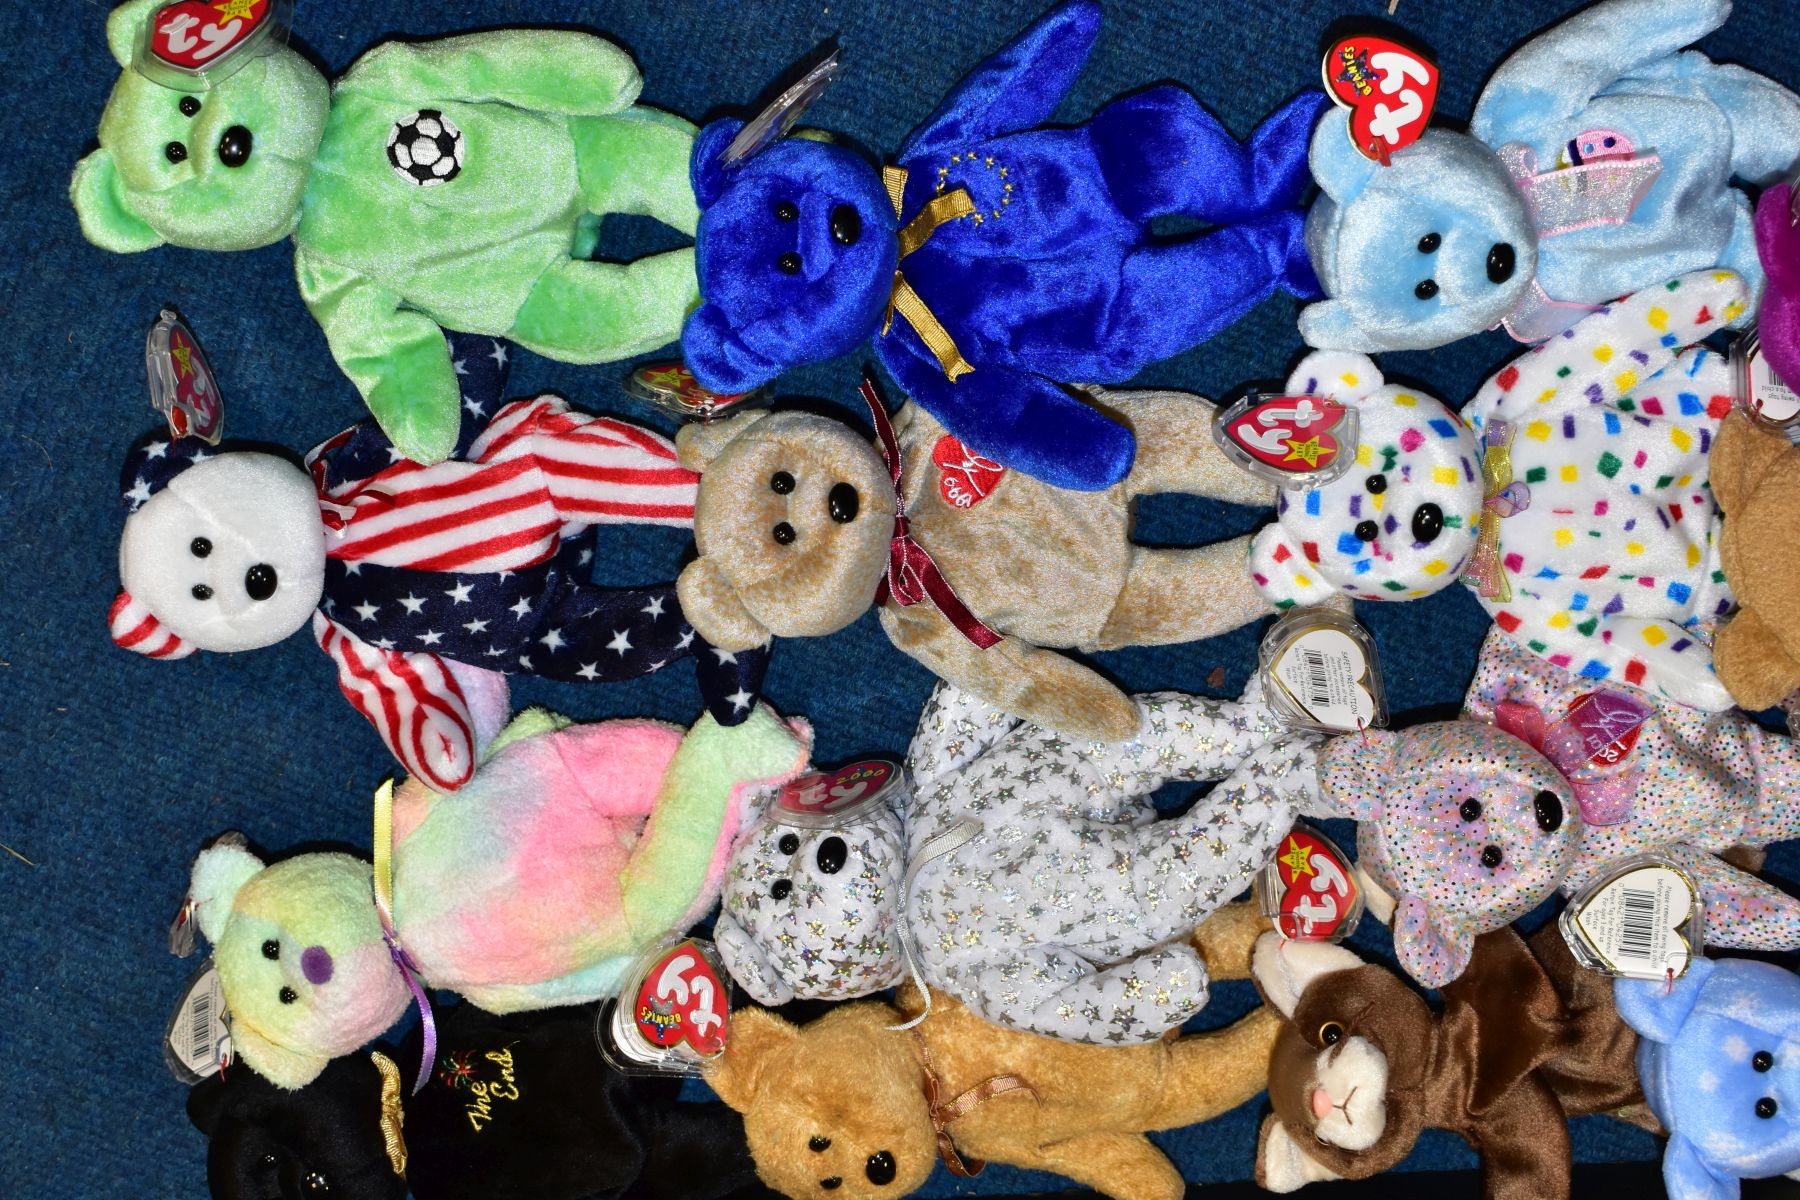 TWO BOXES OF ASSORTED TY BEANIE BABIES, majority with tags, includes Platinum Membership case, - Image 6 of 7